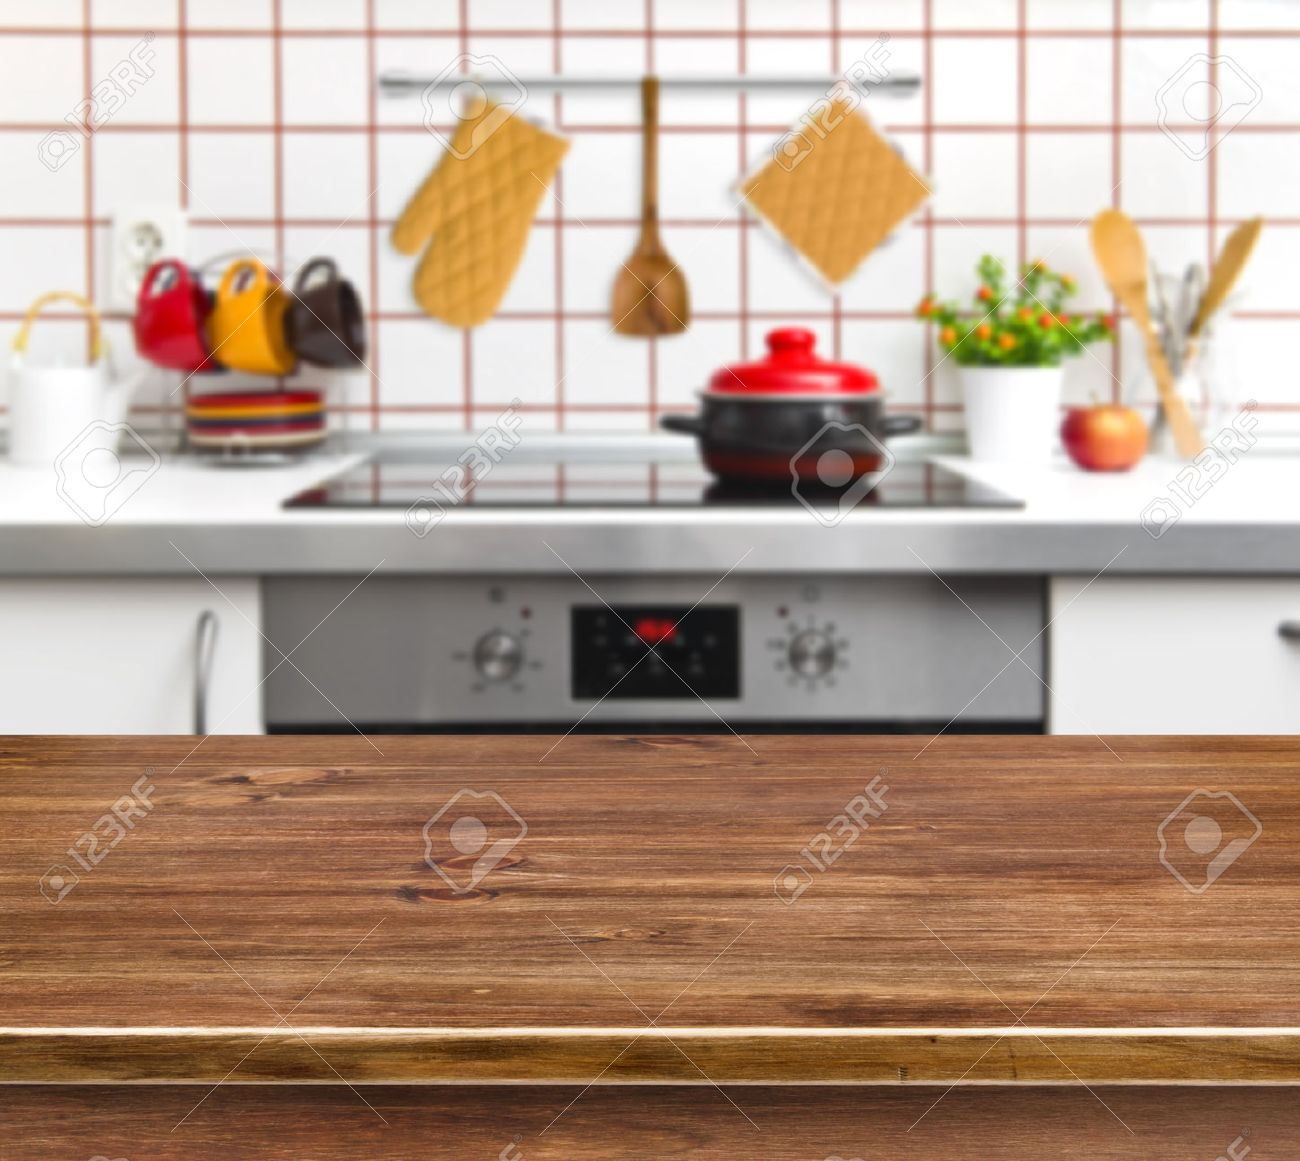 Kitchen Table Background kitchen background images & stock pictures. royalty free kitchen